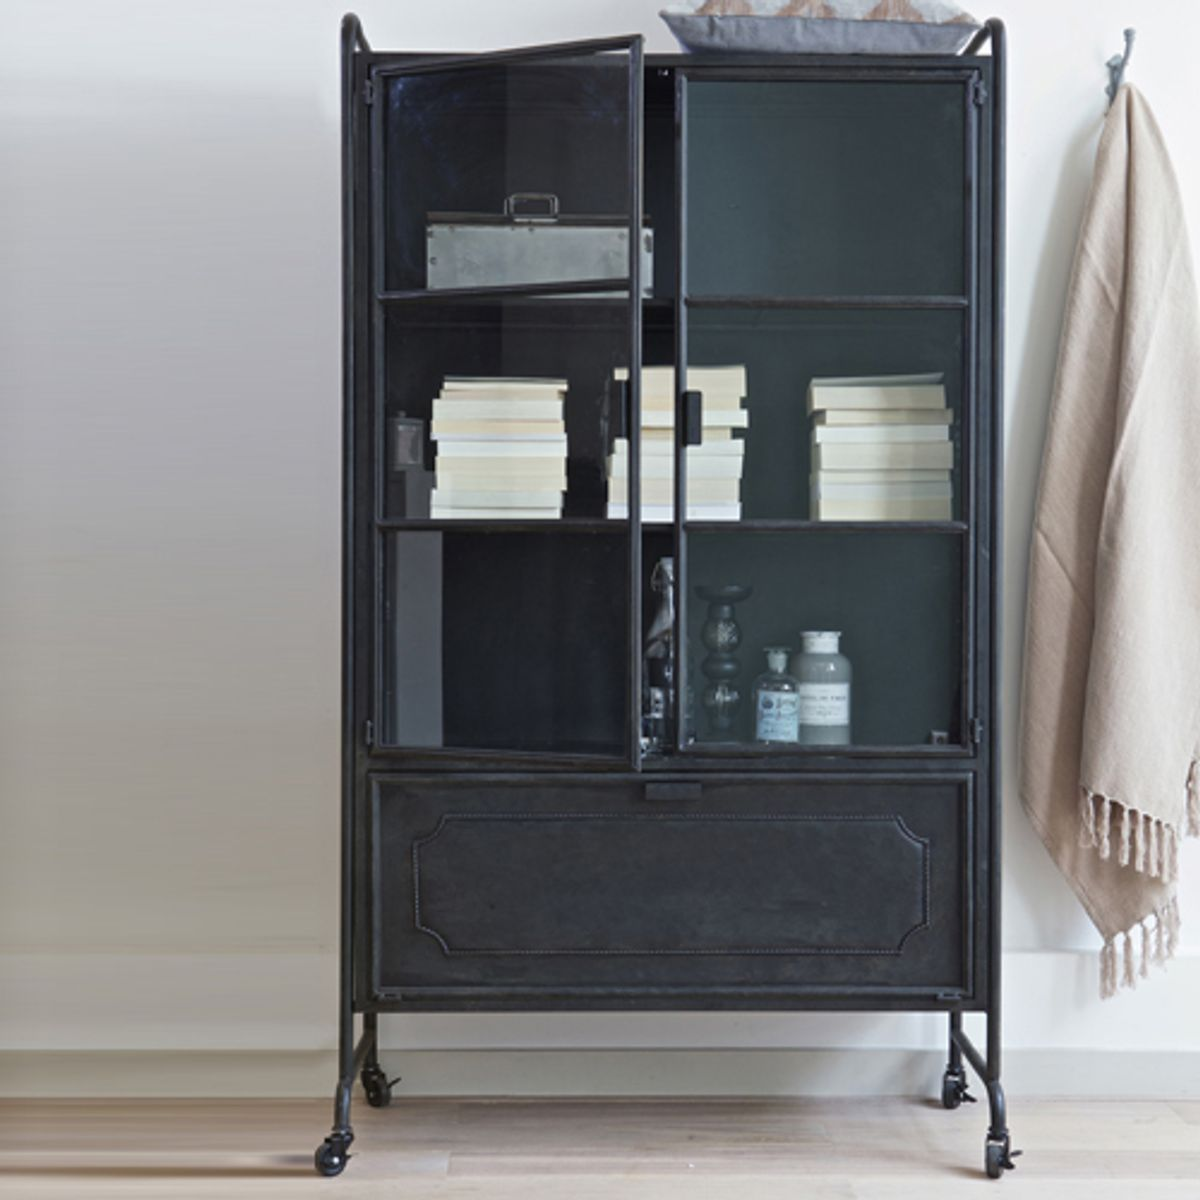 armoire vitrine m tal noir 2 portes verre sur roulettes. Black Bedroom Furniture Sets. Home Design Ideas